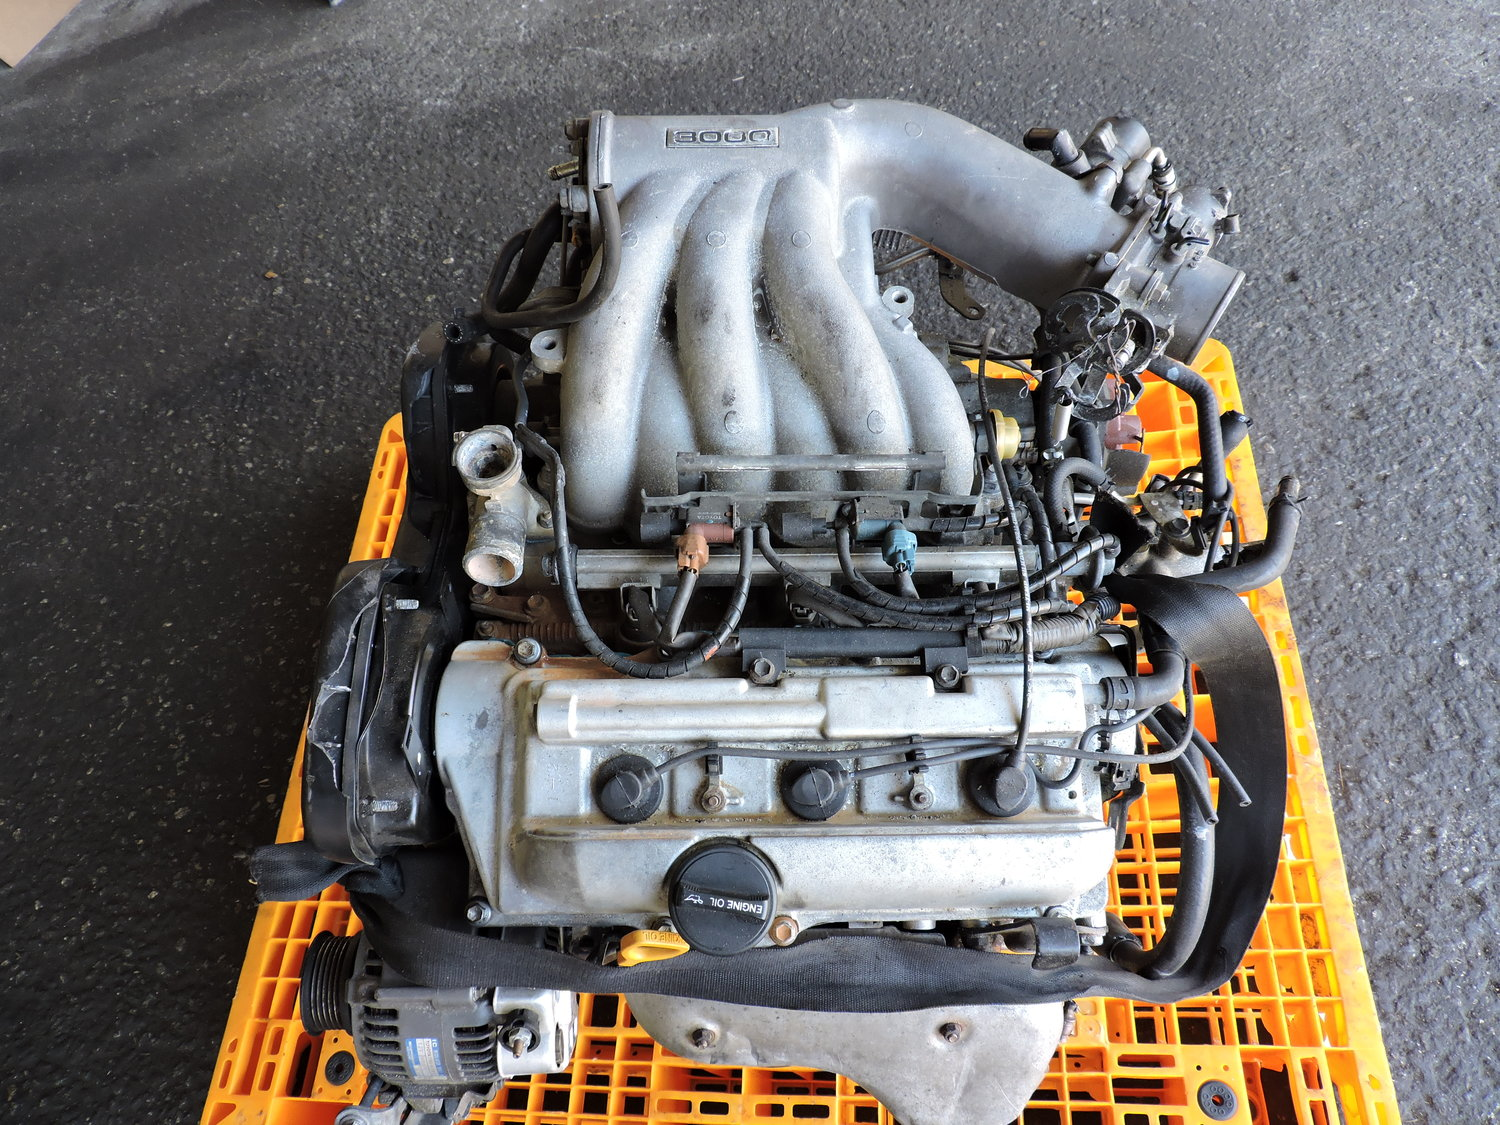 Toyota Camry - 1992 to 1993 - 3VZ-FE 3 0L FWD V6 — JDM Engines New Jersey